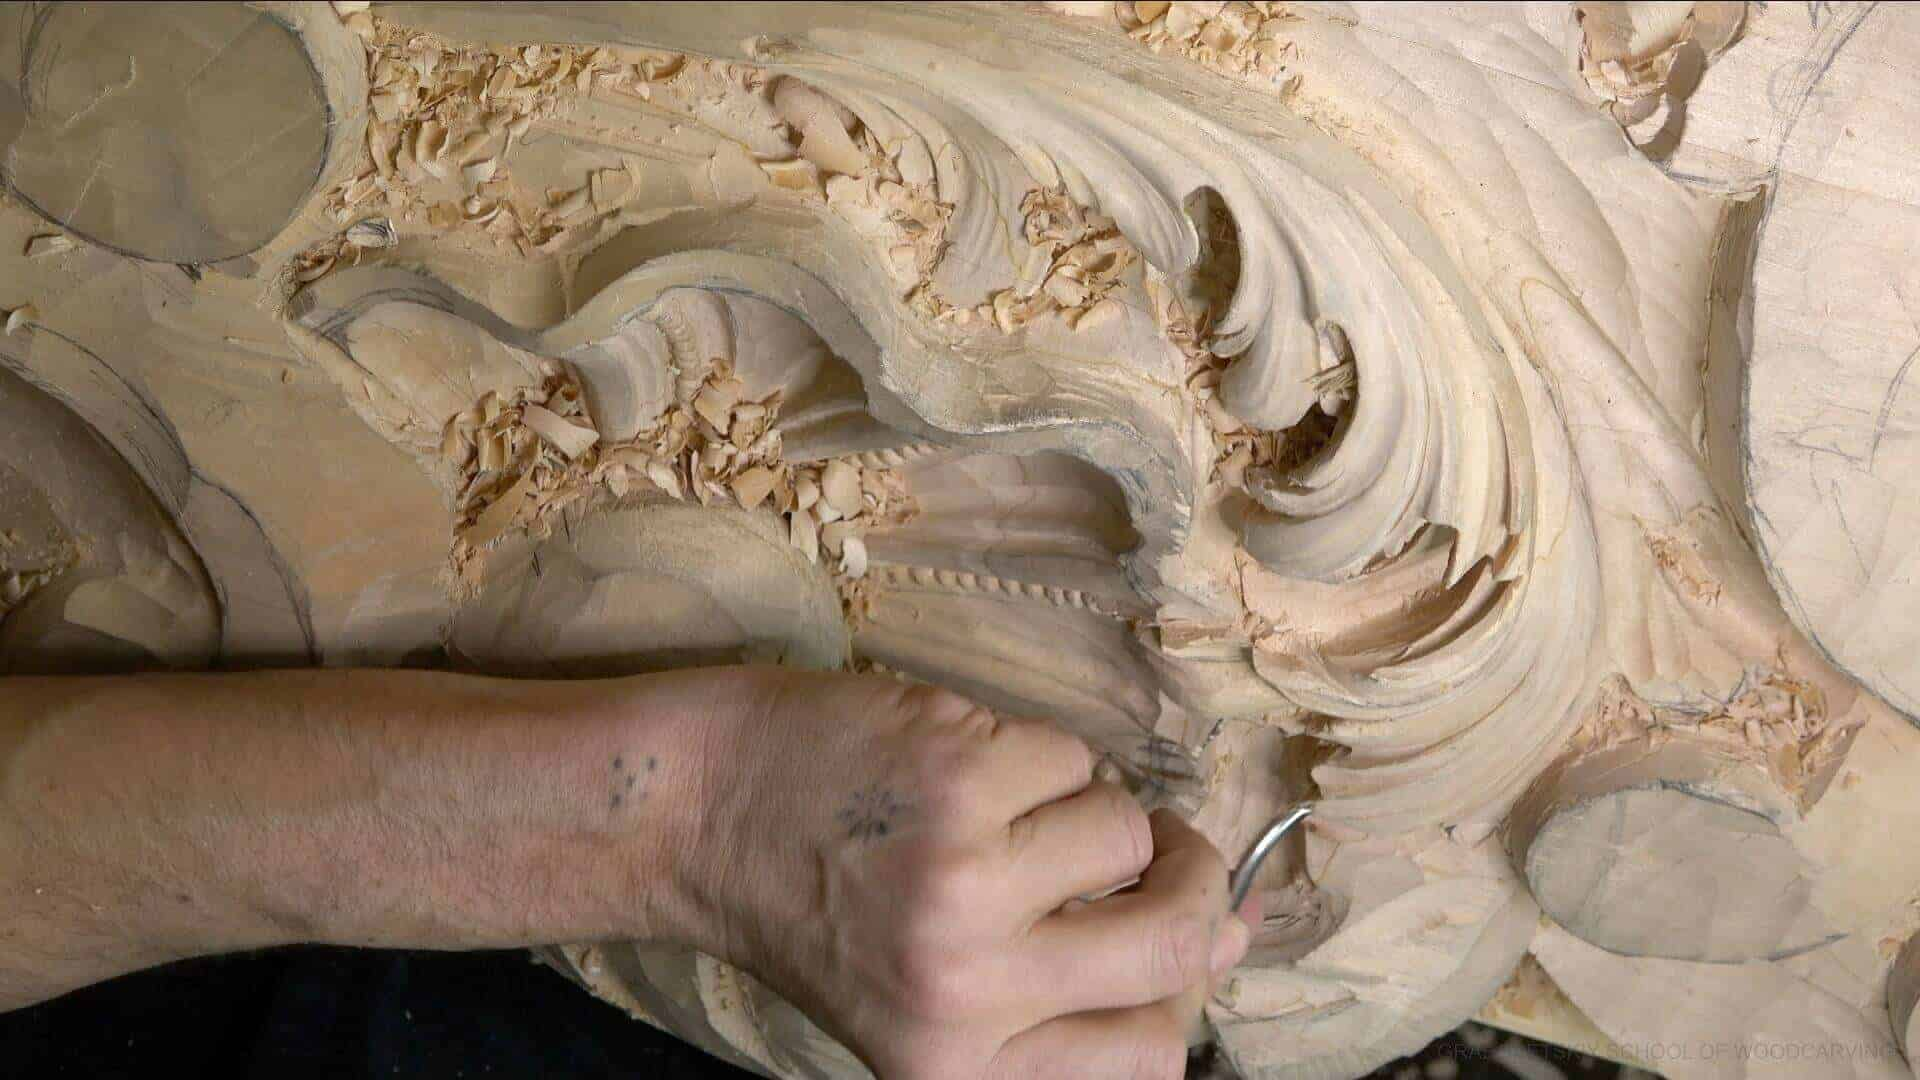 """Wood Carving Course online - Carving Authentic Venice 15th Century room. It is all about being authentic to the original 15th-century wood carving. wood carving course wood carving courses decoy carving classes woodworking school cabinet making school wood carving supplies wood carving class wood carving school wood carving schools wood carving courses for beginners wood carving videos free wood carving lessons near me wood carving classes online wood carving schools wood carving workshops wood carving programs wood carving online shop Woodcarving, Wood Carving, Woodcarving School, School of Woodcarving, School of Wood Carving wood carving course wood carving courses decoy carving classes woodworking school cabinet making school wood carving supplies wood carving class wood carving school wood carving schools wood carving courses for beginners wood carving videos free wood carving lessons near me wood carving classes online wood carving schools wood carving workshops wood carving programs wood carving online shop https://www.instagram.com/woodcarvergrabovetskiy/ Design for Wood Carving is not the same as for Fine art or even Sculpture. Fine art is 2D World vs Sculpture and Wood carving is 3D world. Wood Carving is also a type of Sculpture. But if You compare a Clay Modeling and Wood Carving. Modeling clay is the art of ADDING ON and Wood Carving is an Art of DEDUCTION. And art of deduction is a little more complicating. You can deduct with Your Carving tool just a 1/16"""" too much and Your work is """"gone with the wind"""". To Design for wood carving We need to Think a little different. And the same questions should be always in our heads- What tools do I have and how I will carve what I am designing? How deep can my tool travel inside of my piece of wood and how it will turn. Design for Wood Carving is a science and it is based on a laws. During this Class we will discover some of the laws or Principles and answer a really important Design questions. The Law of Space. - H"""